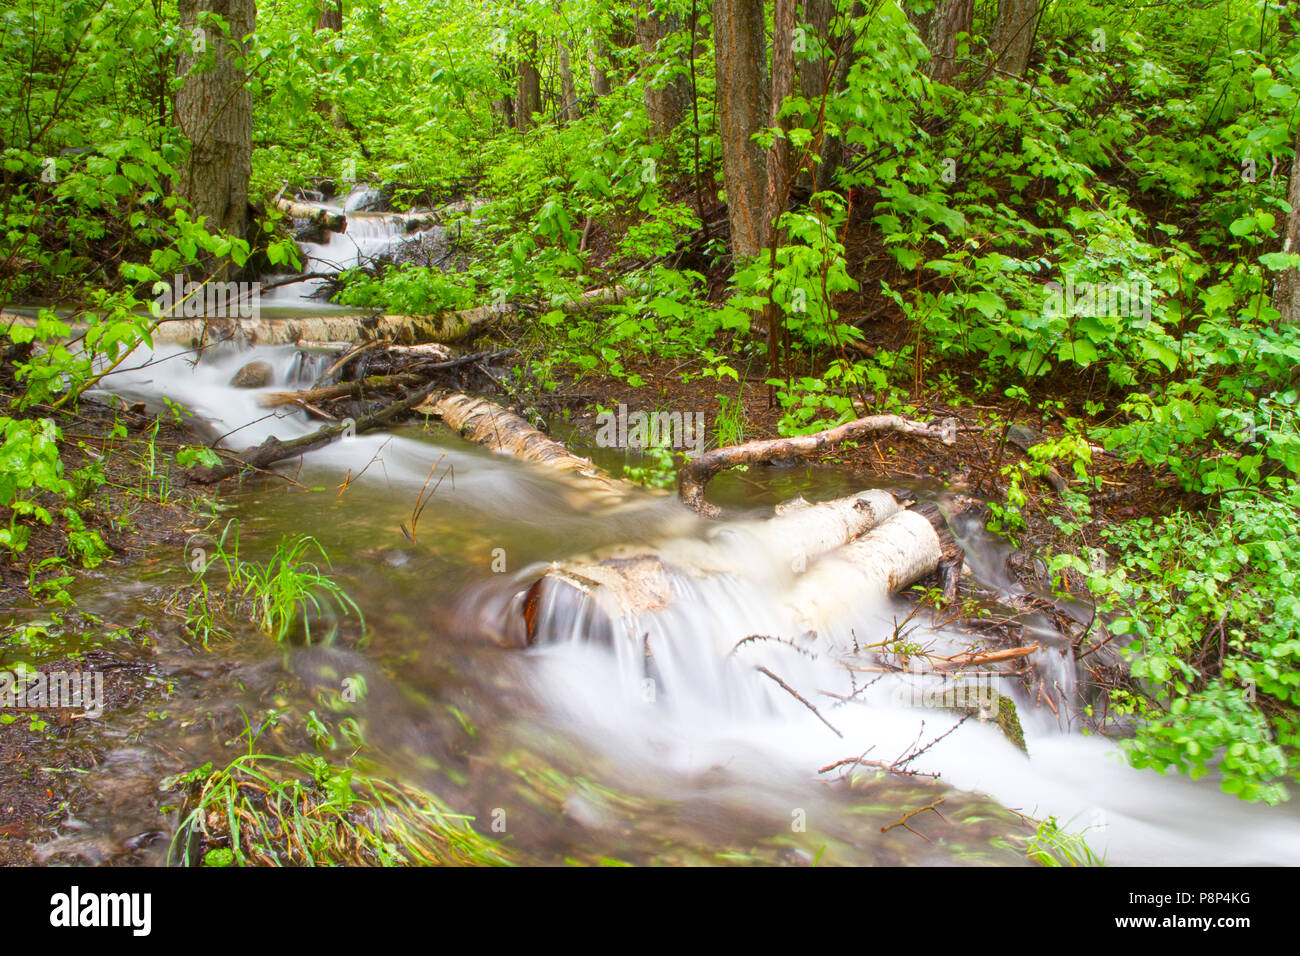 Small stream flowing over logs in forest, moving water in Glacier National Park, Montana, USA - Stock Image